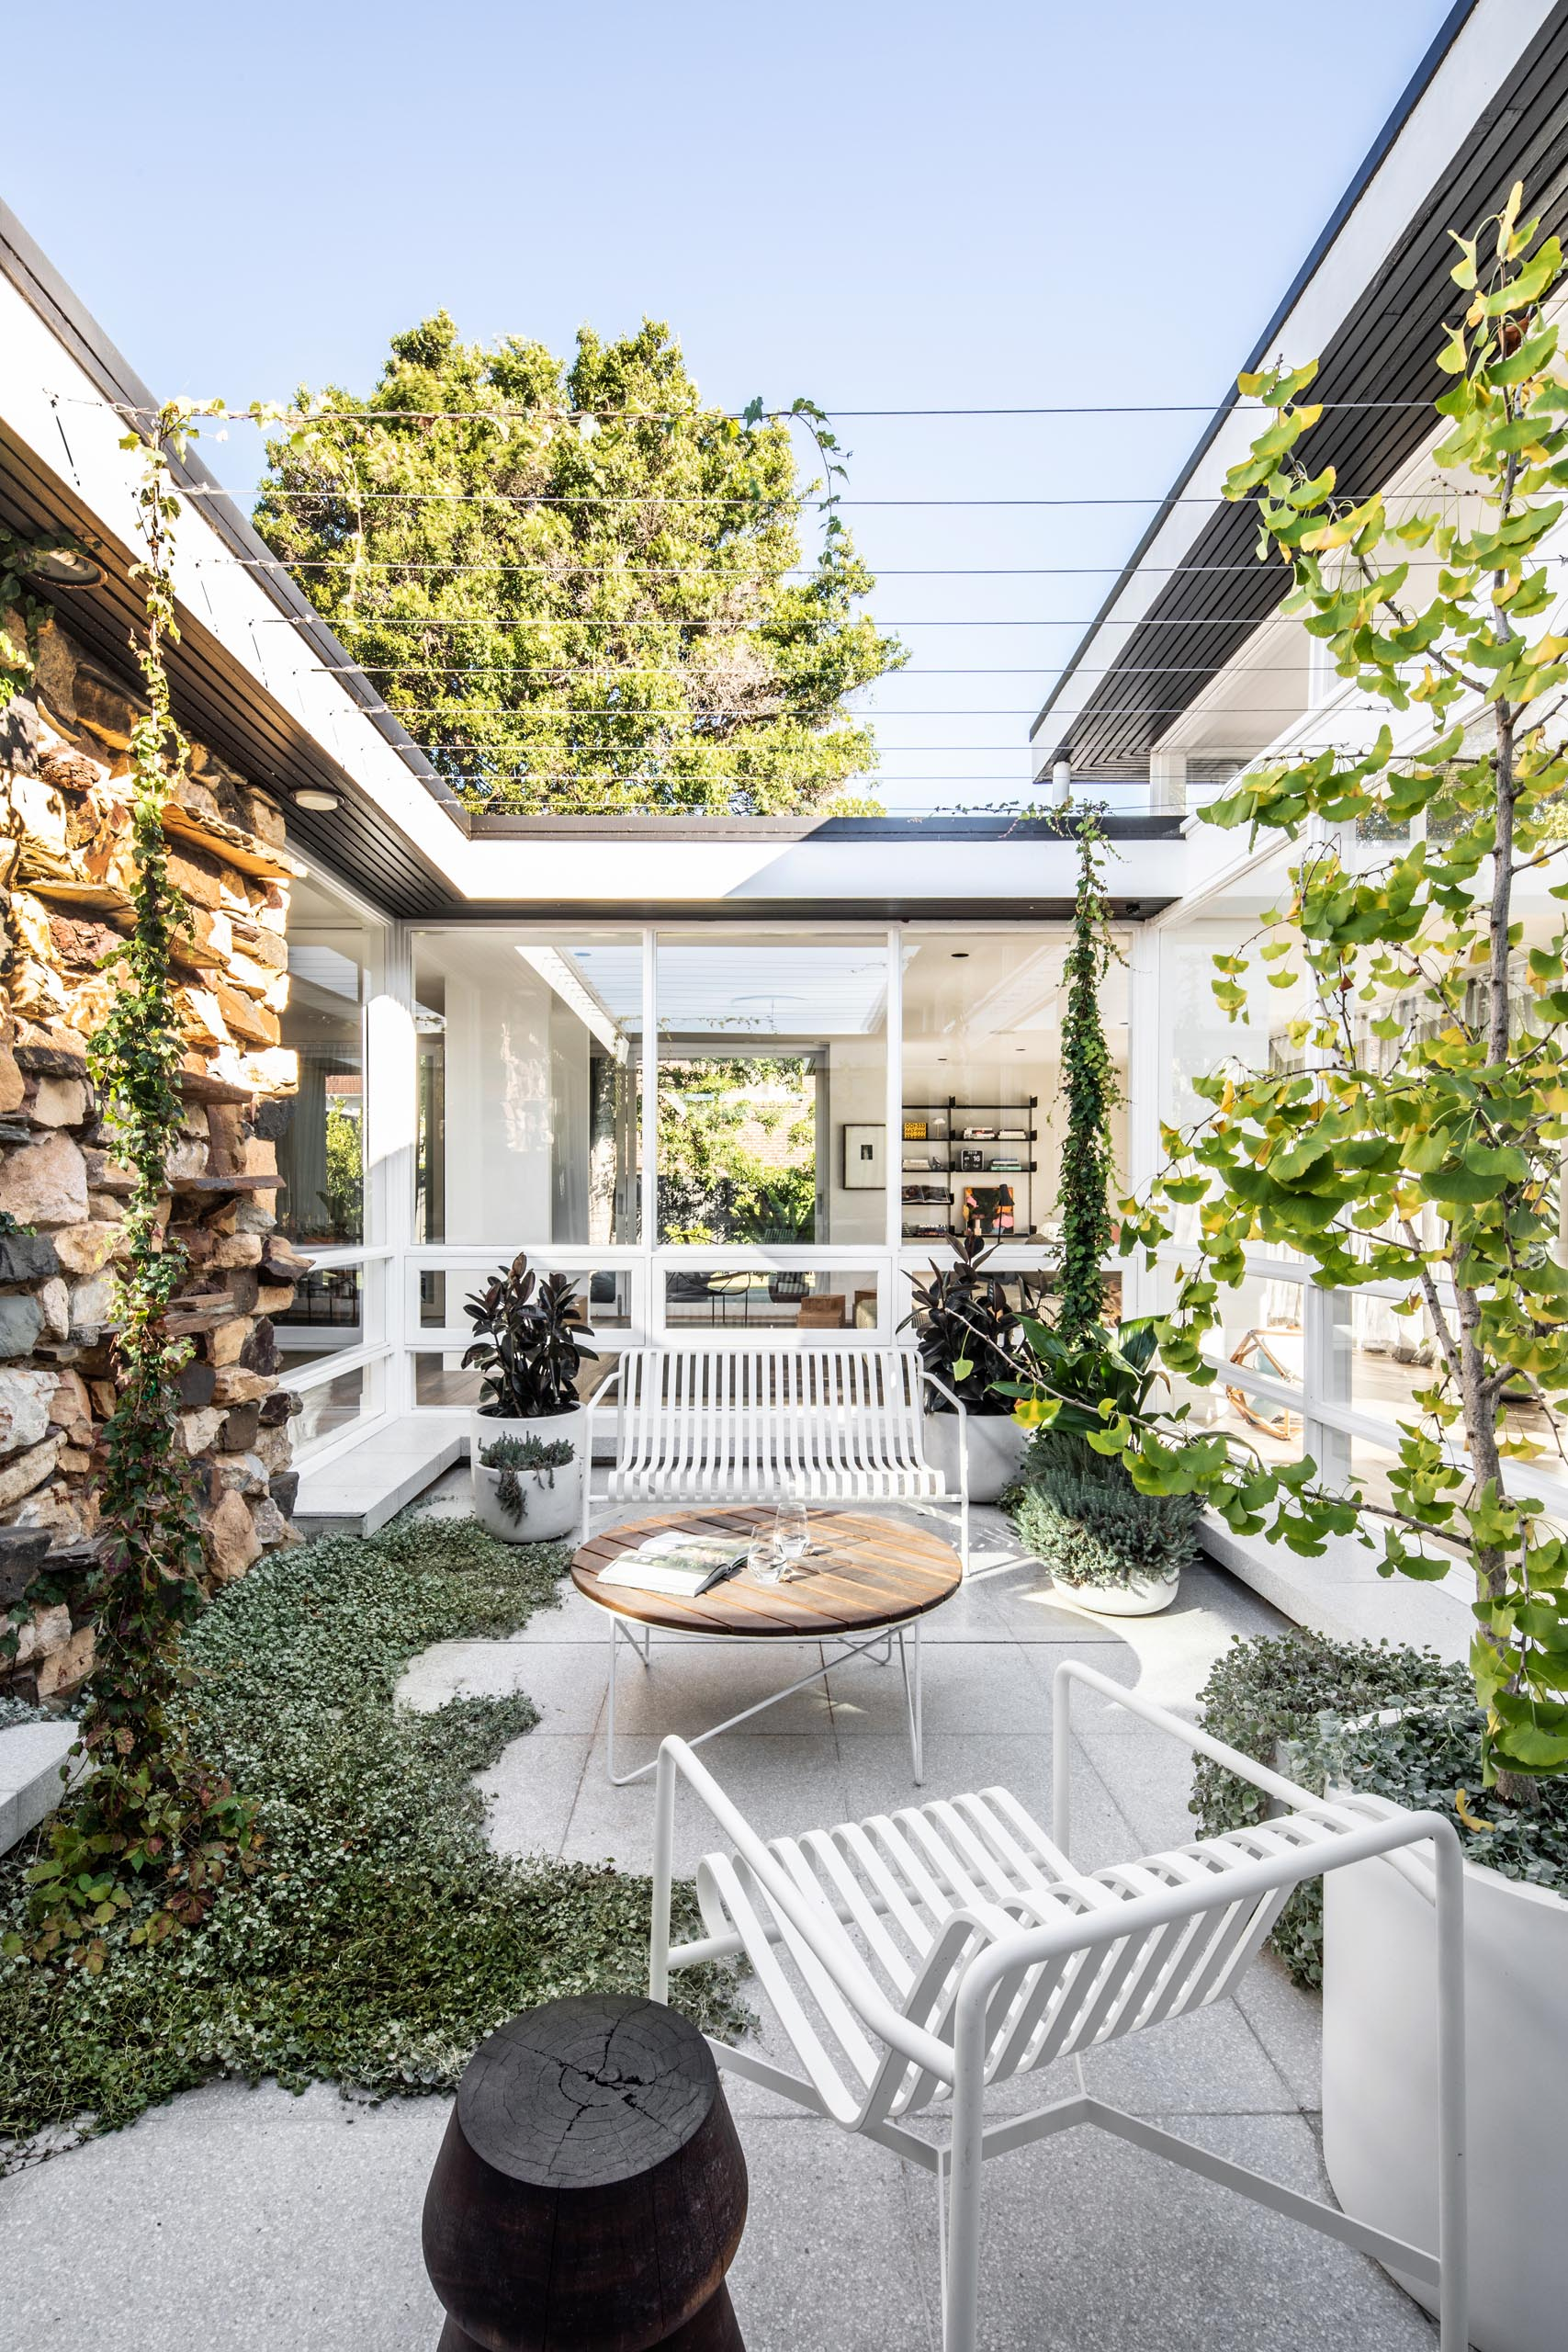 A central light-drenched courtyard has vines that will create a shaded outdoor space, furnished with planters and simple furniture.